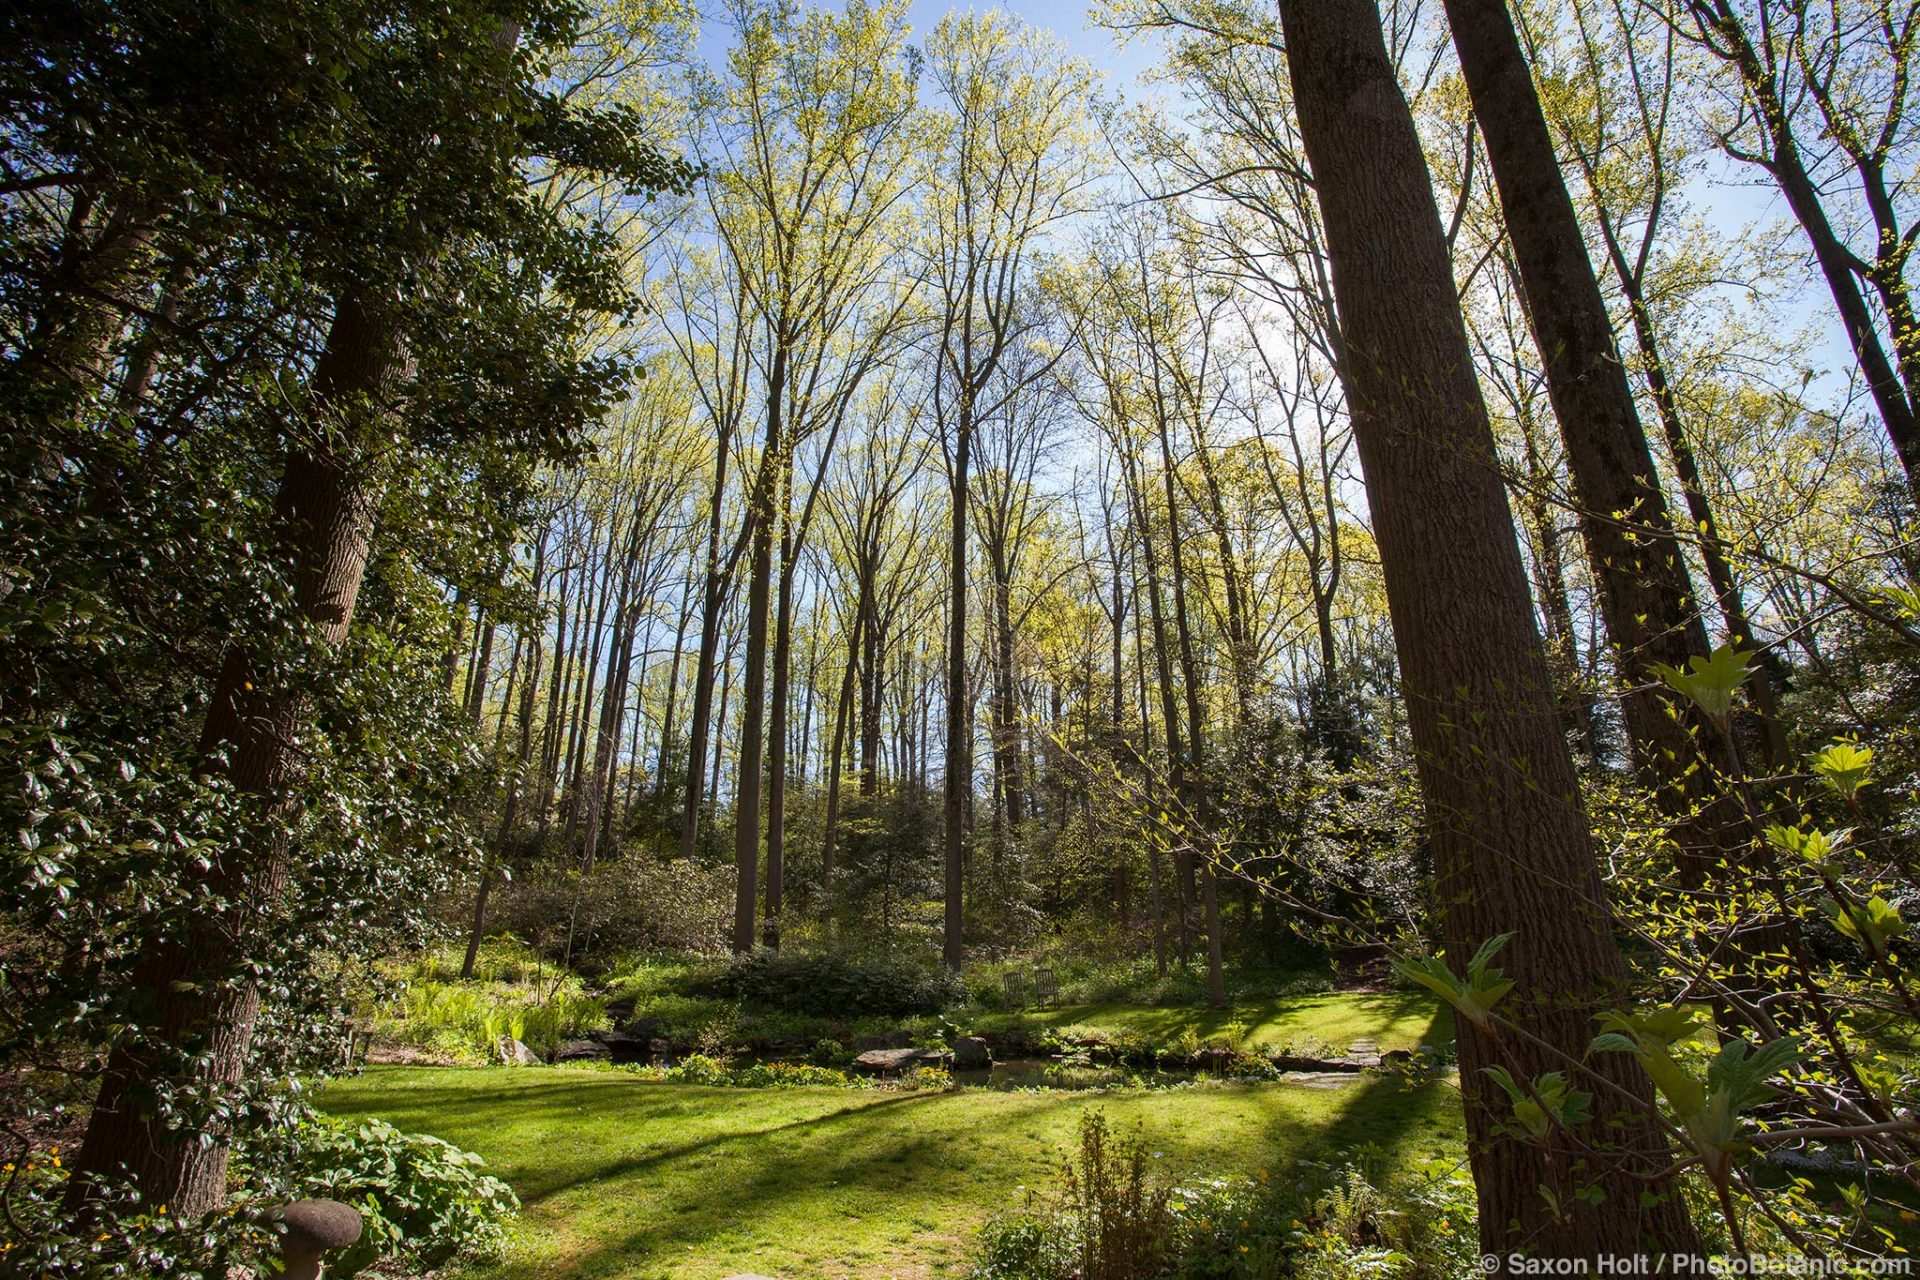 Liriodendron tulipifera -, Tulip poplar tree, in grove with spring leaves emerging in woodland garden at Mount Cuba Center